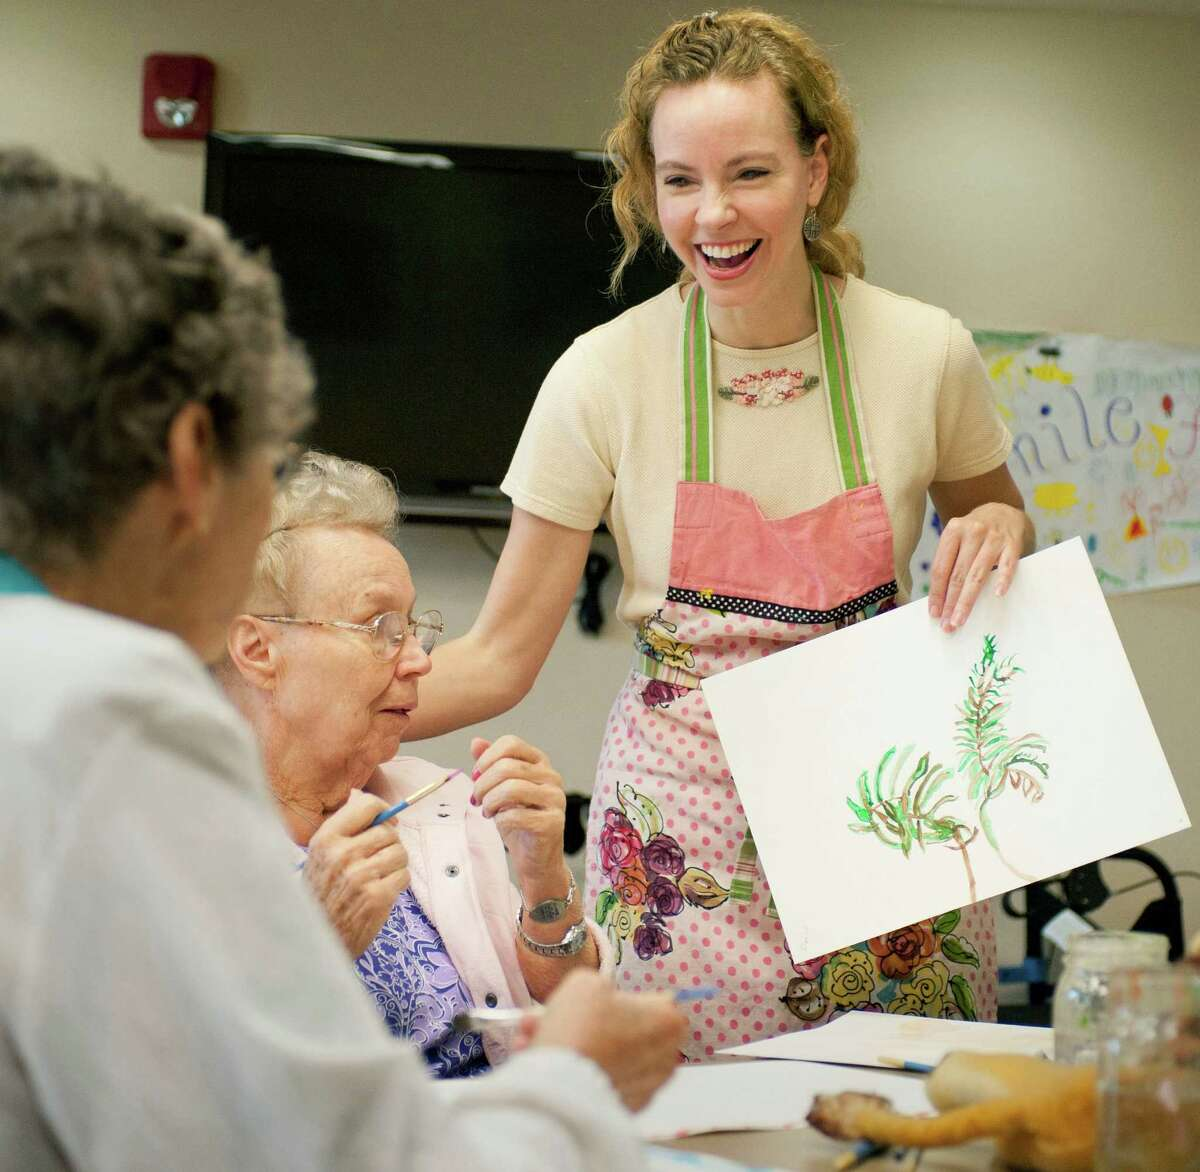 Memory art class teacher Gina Reese, right, shows a watercolor painting to participants Margaret Hockey, left, and Doris Maynard, Monday, June 4, 2012, at Franklin Park in San Antonio. (Darren Abate/Express-News)